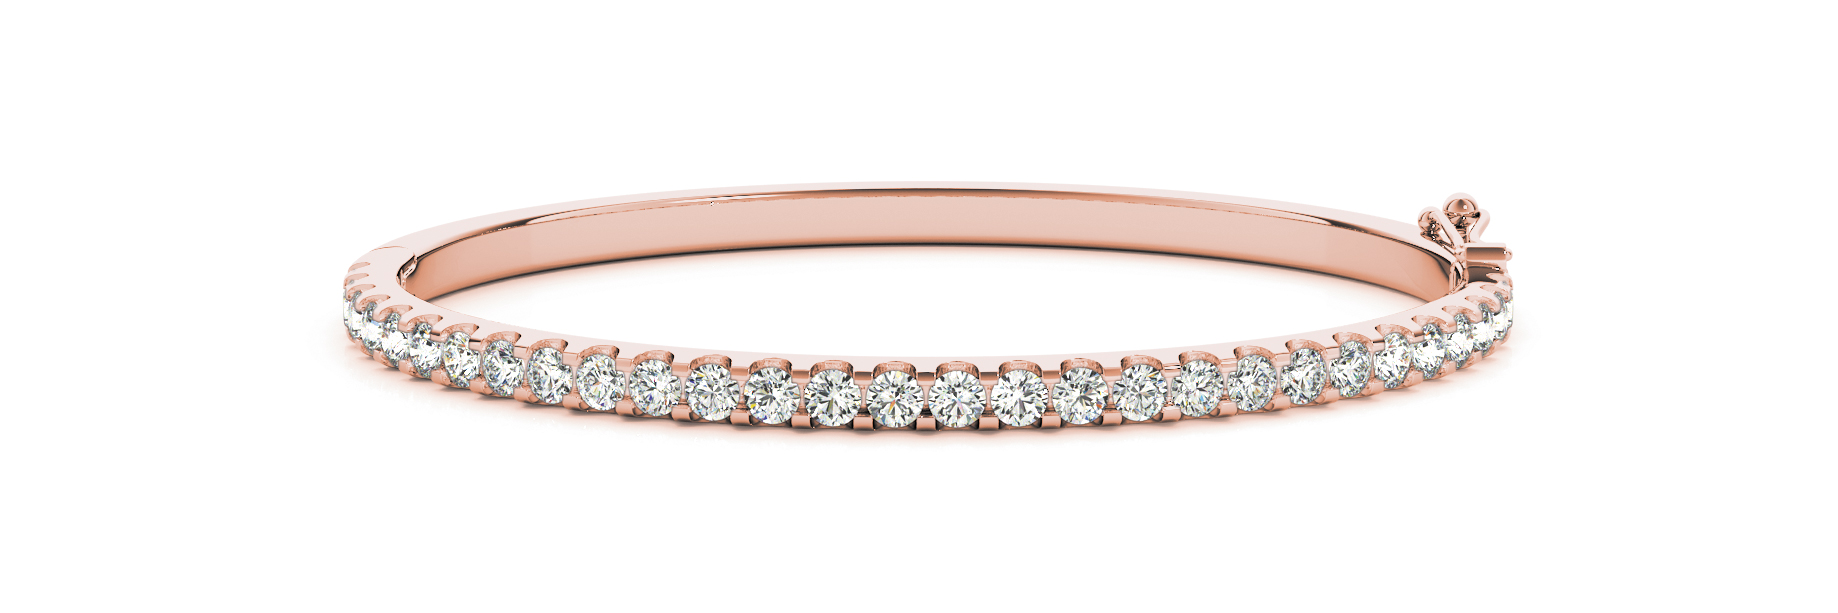 3.96 Carat Round Diamond Bangle in Rose Gold